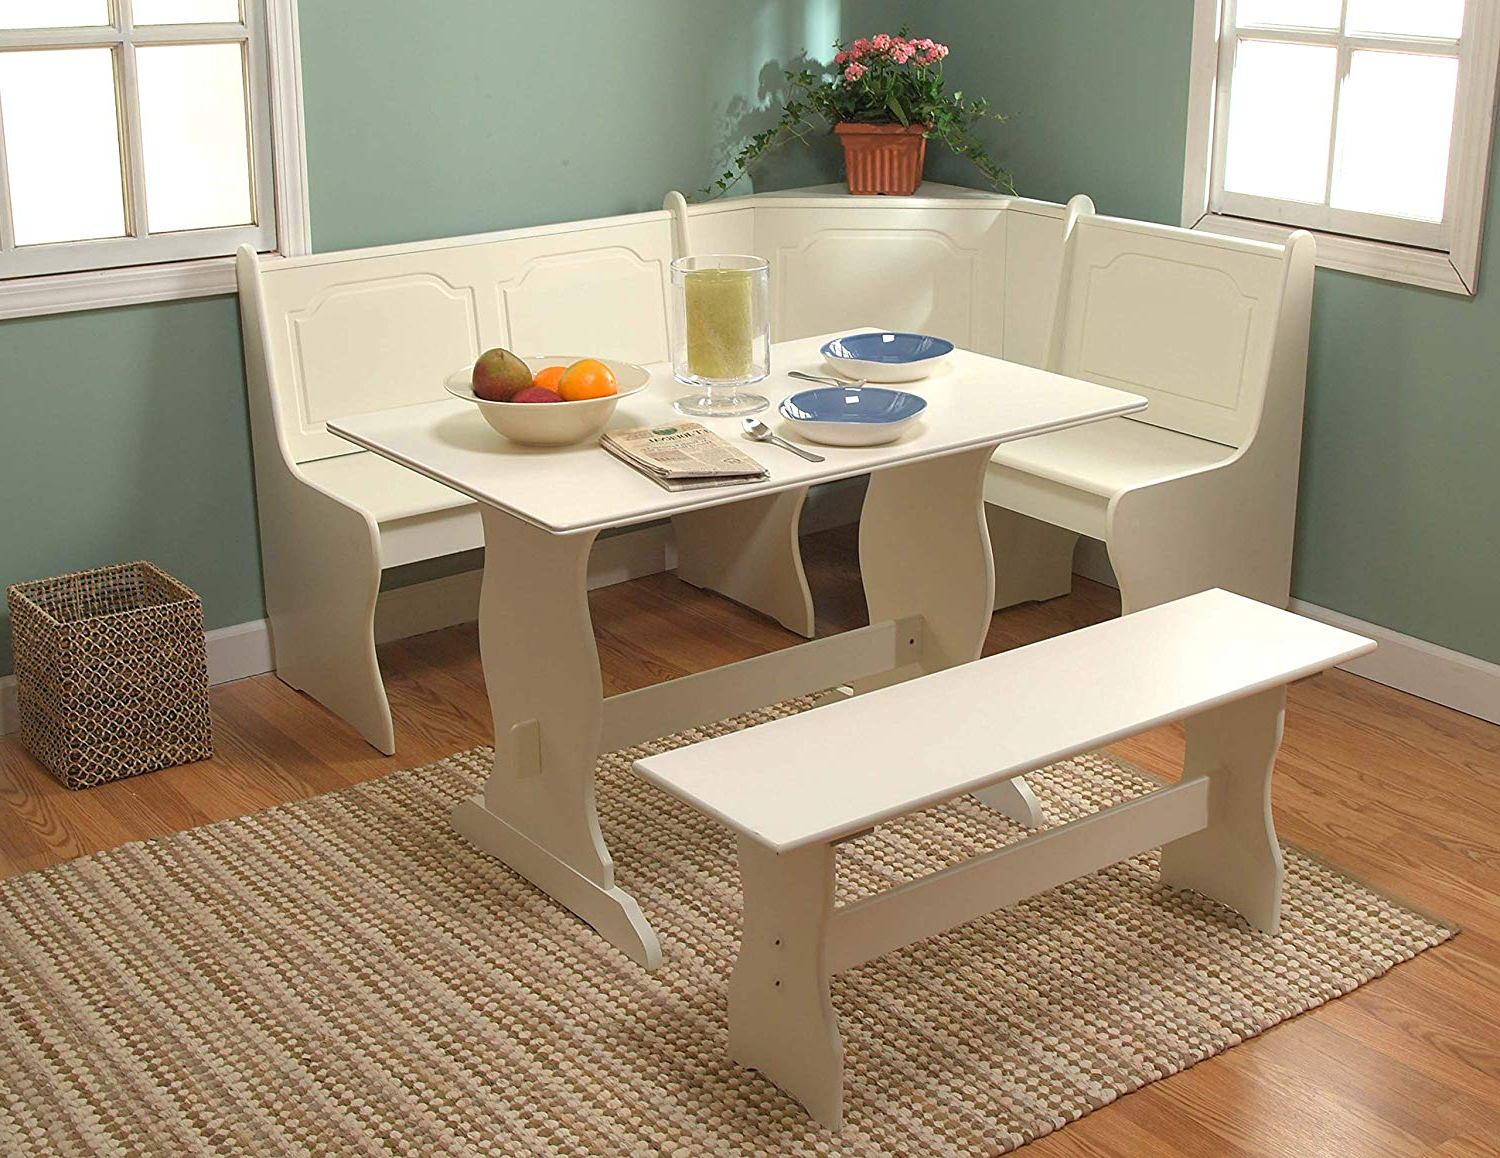 Target Marketing Systems 3 Piece Breakfast Nook Dining Set With A L Shaped  Storage Bench And A Trestle Style Dining Table And Bench, Antique White With Well Known 3 Piece Breakfast Dining Sets (View 16 of 20)